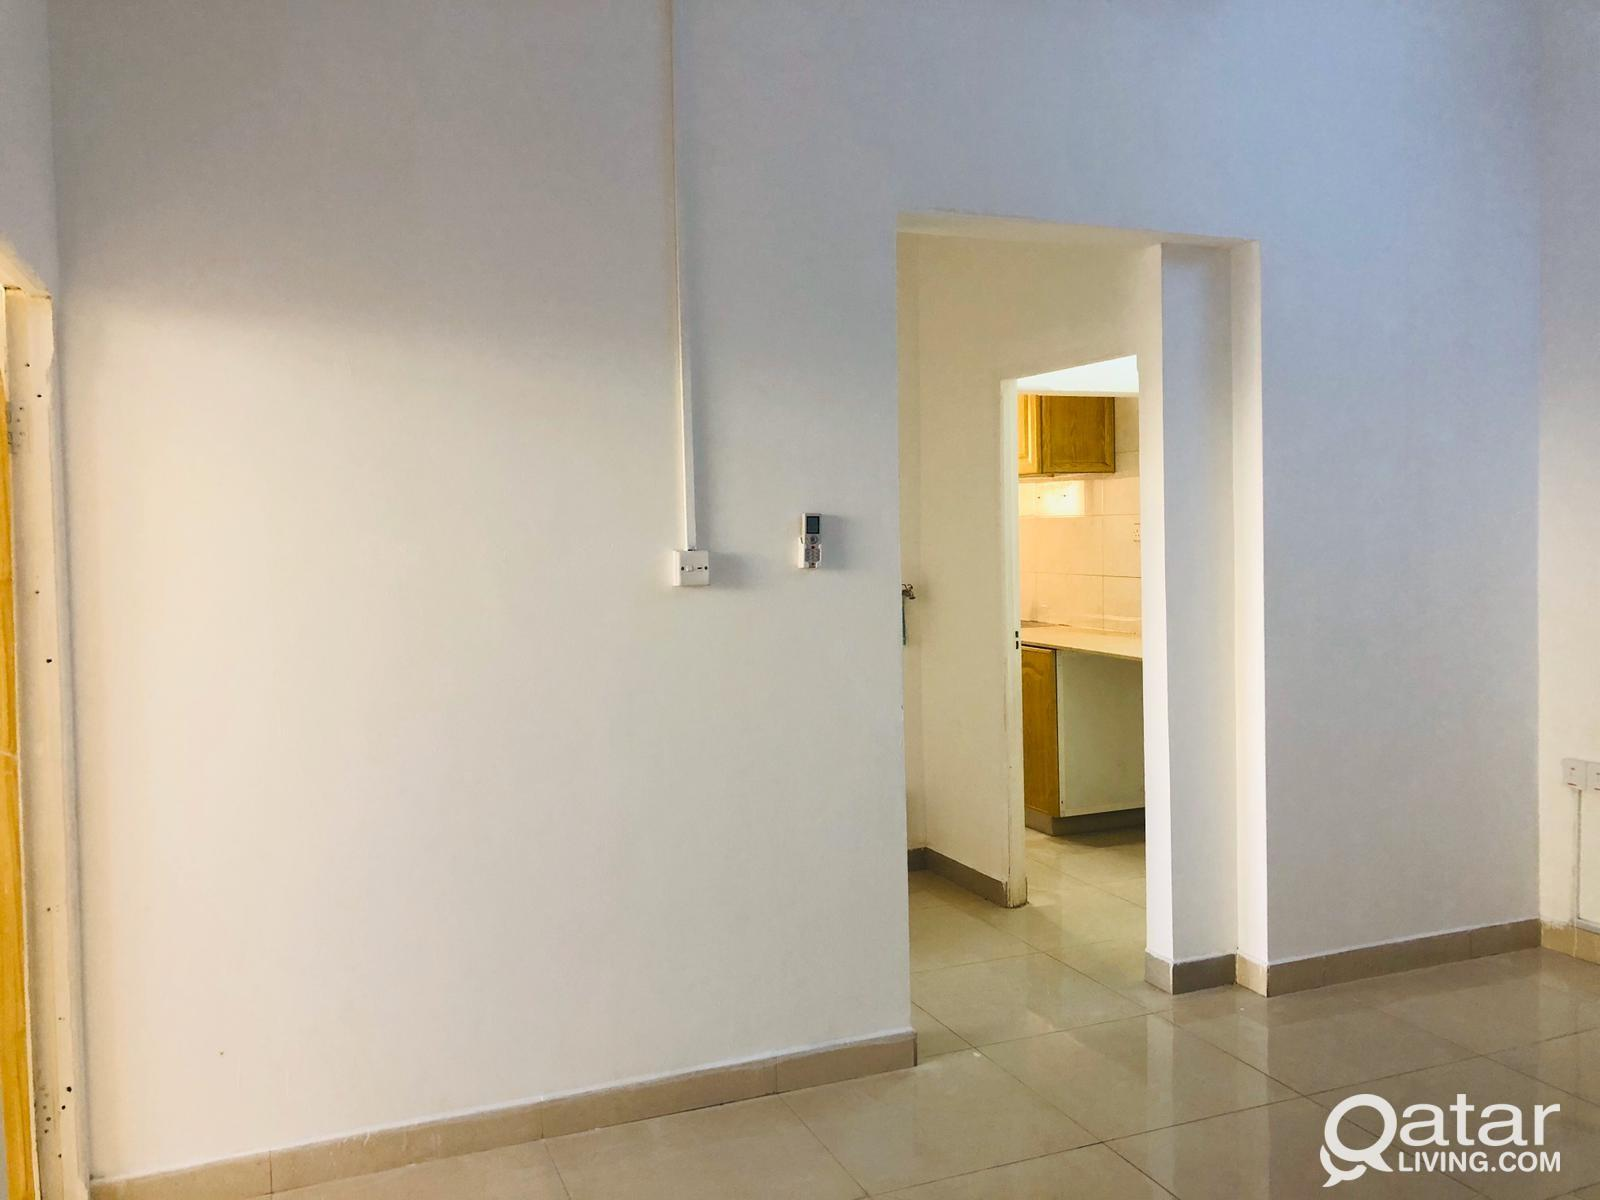 Ref No:3830 Offer!!! Spacious 2 BHK Apartment for